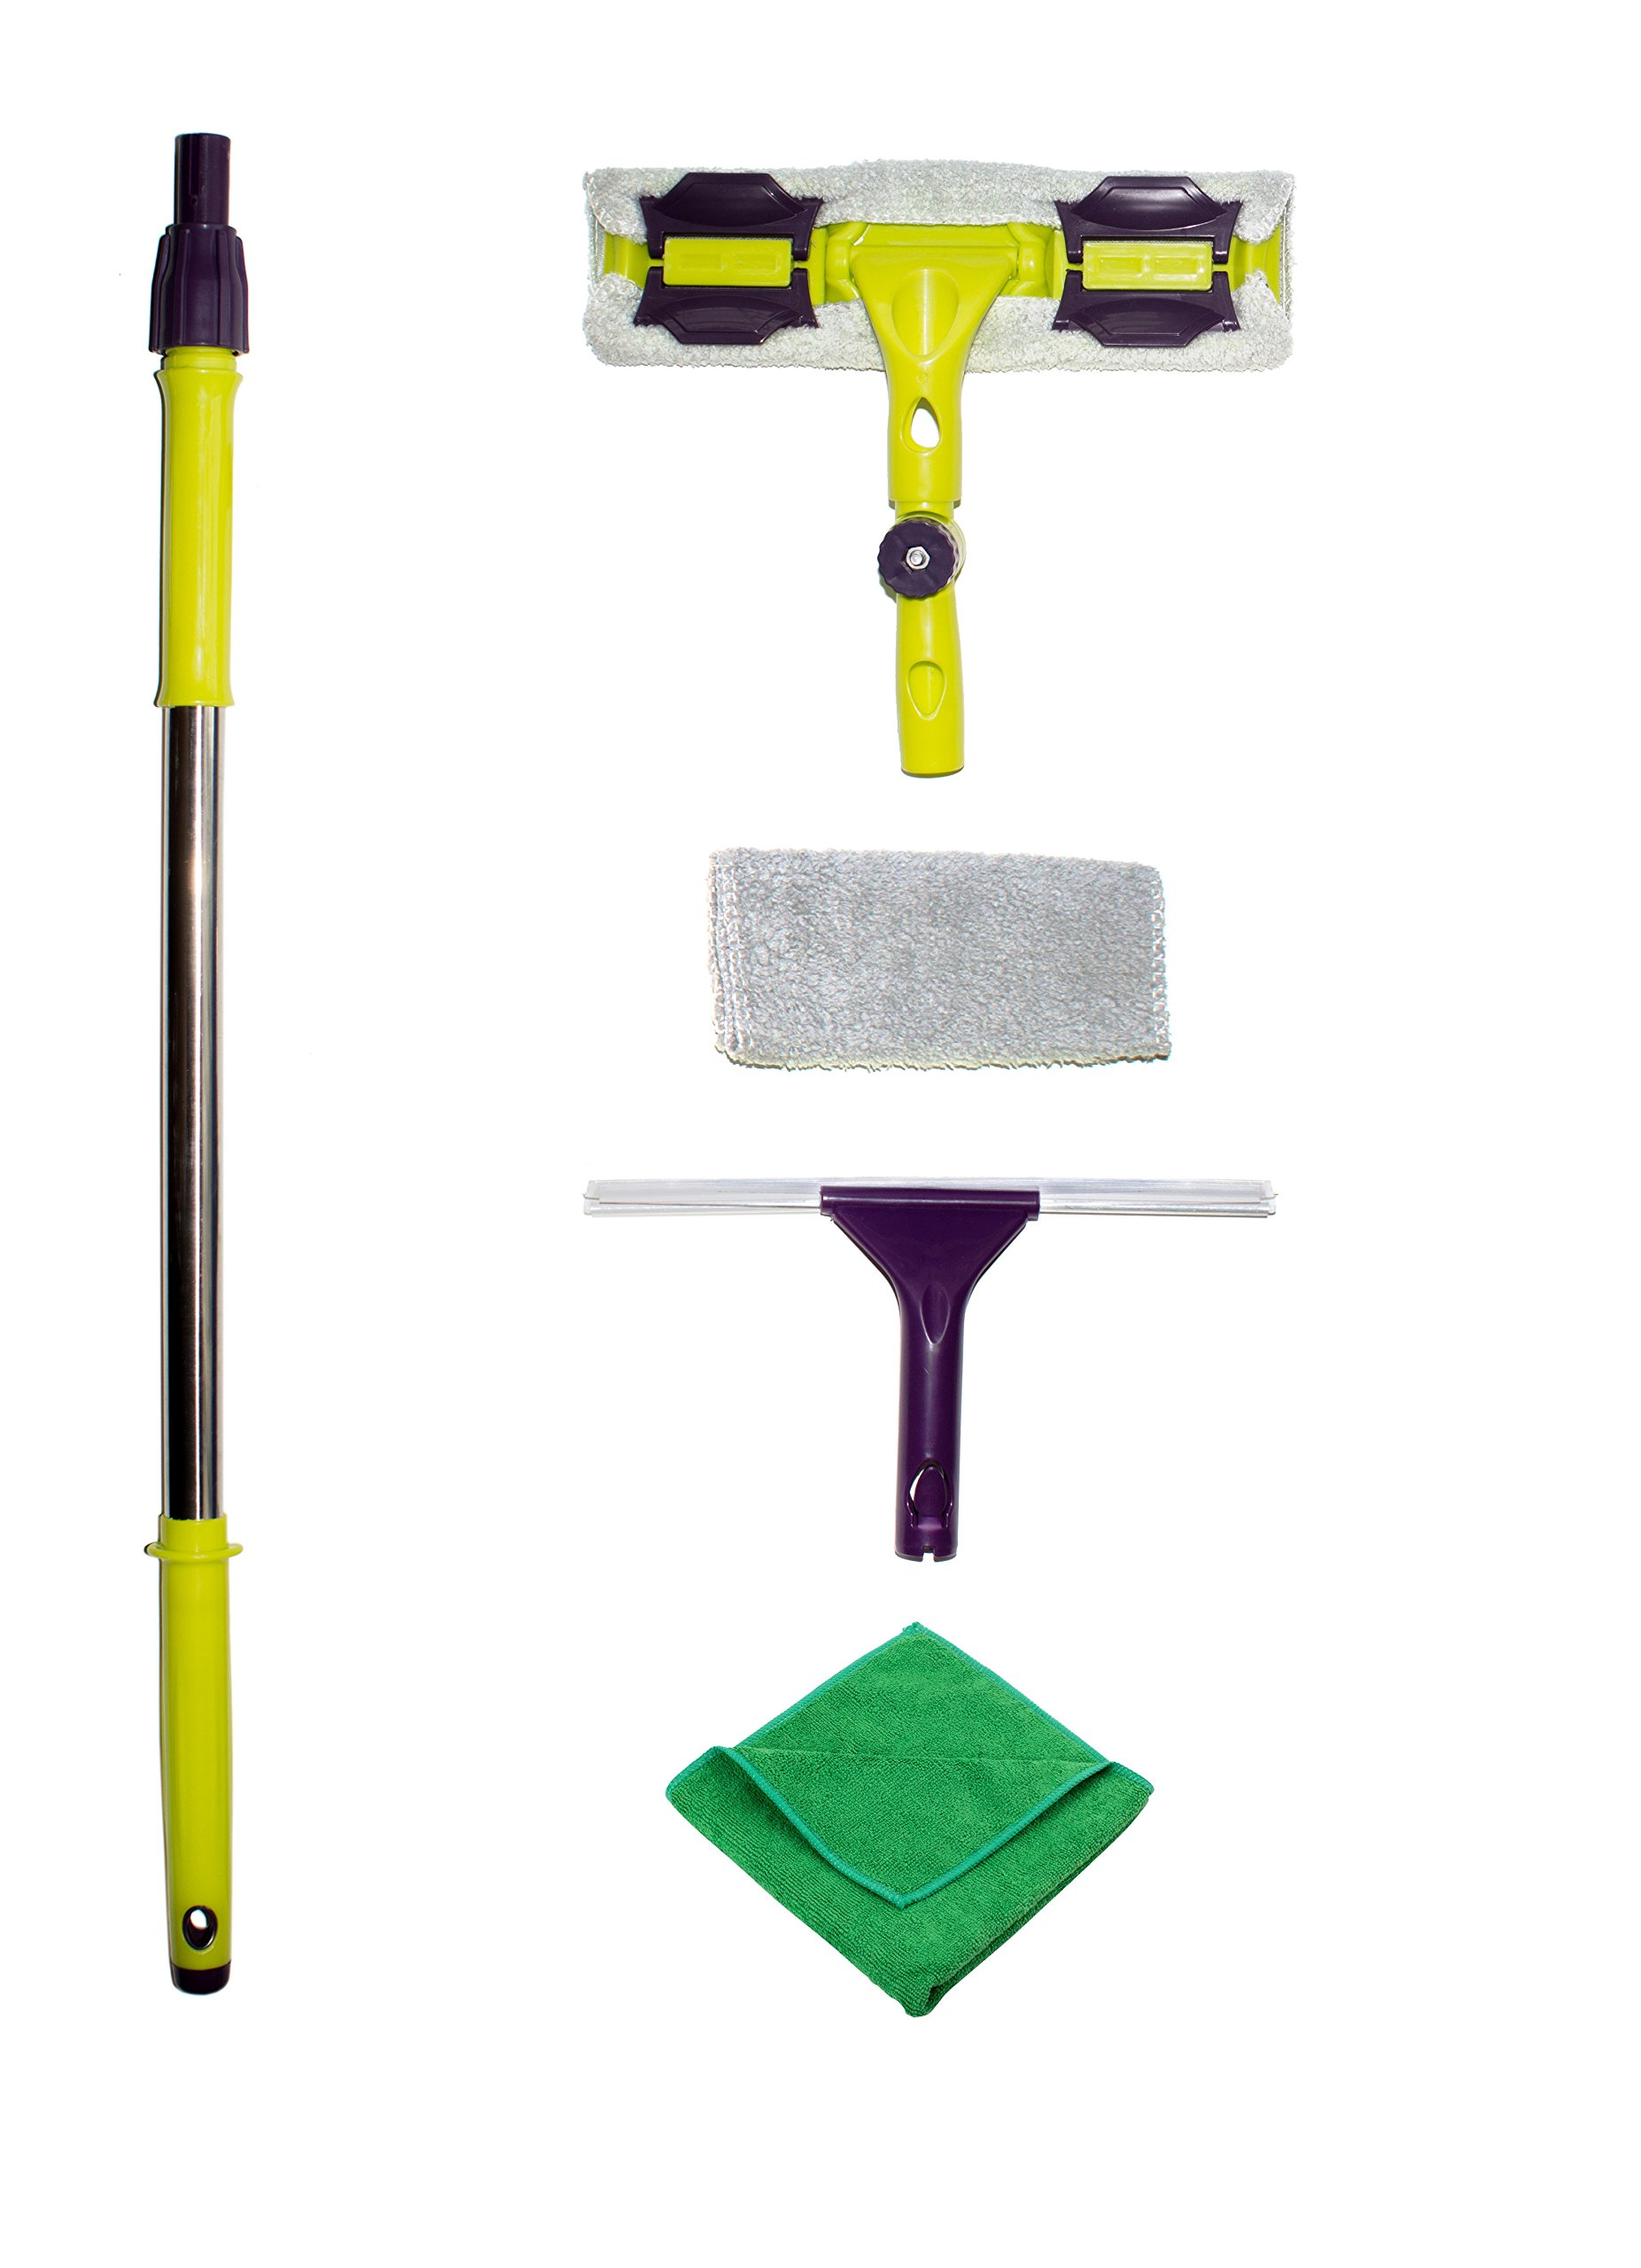 Premium Window Squeegee Kit with Extension Pole and Microfiber Glass Scrubber Includes Soft Rubber Blade and Replacement Cleaner Pad with Bonus Polishing Cloth for House Shower Car and Outdoor by Karinox